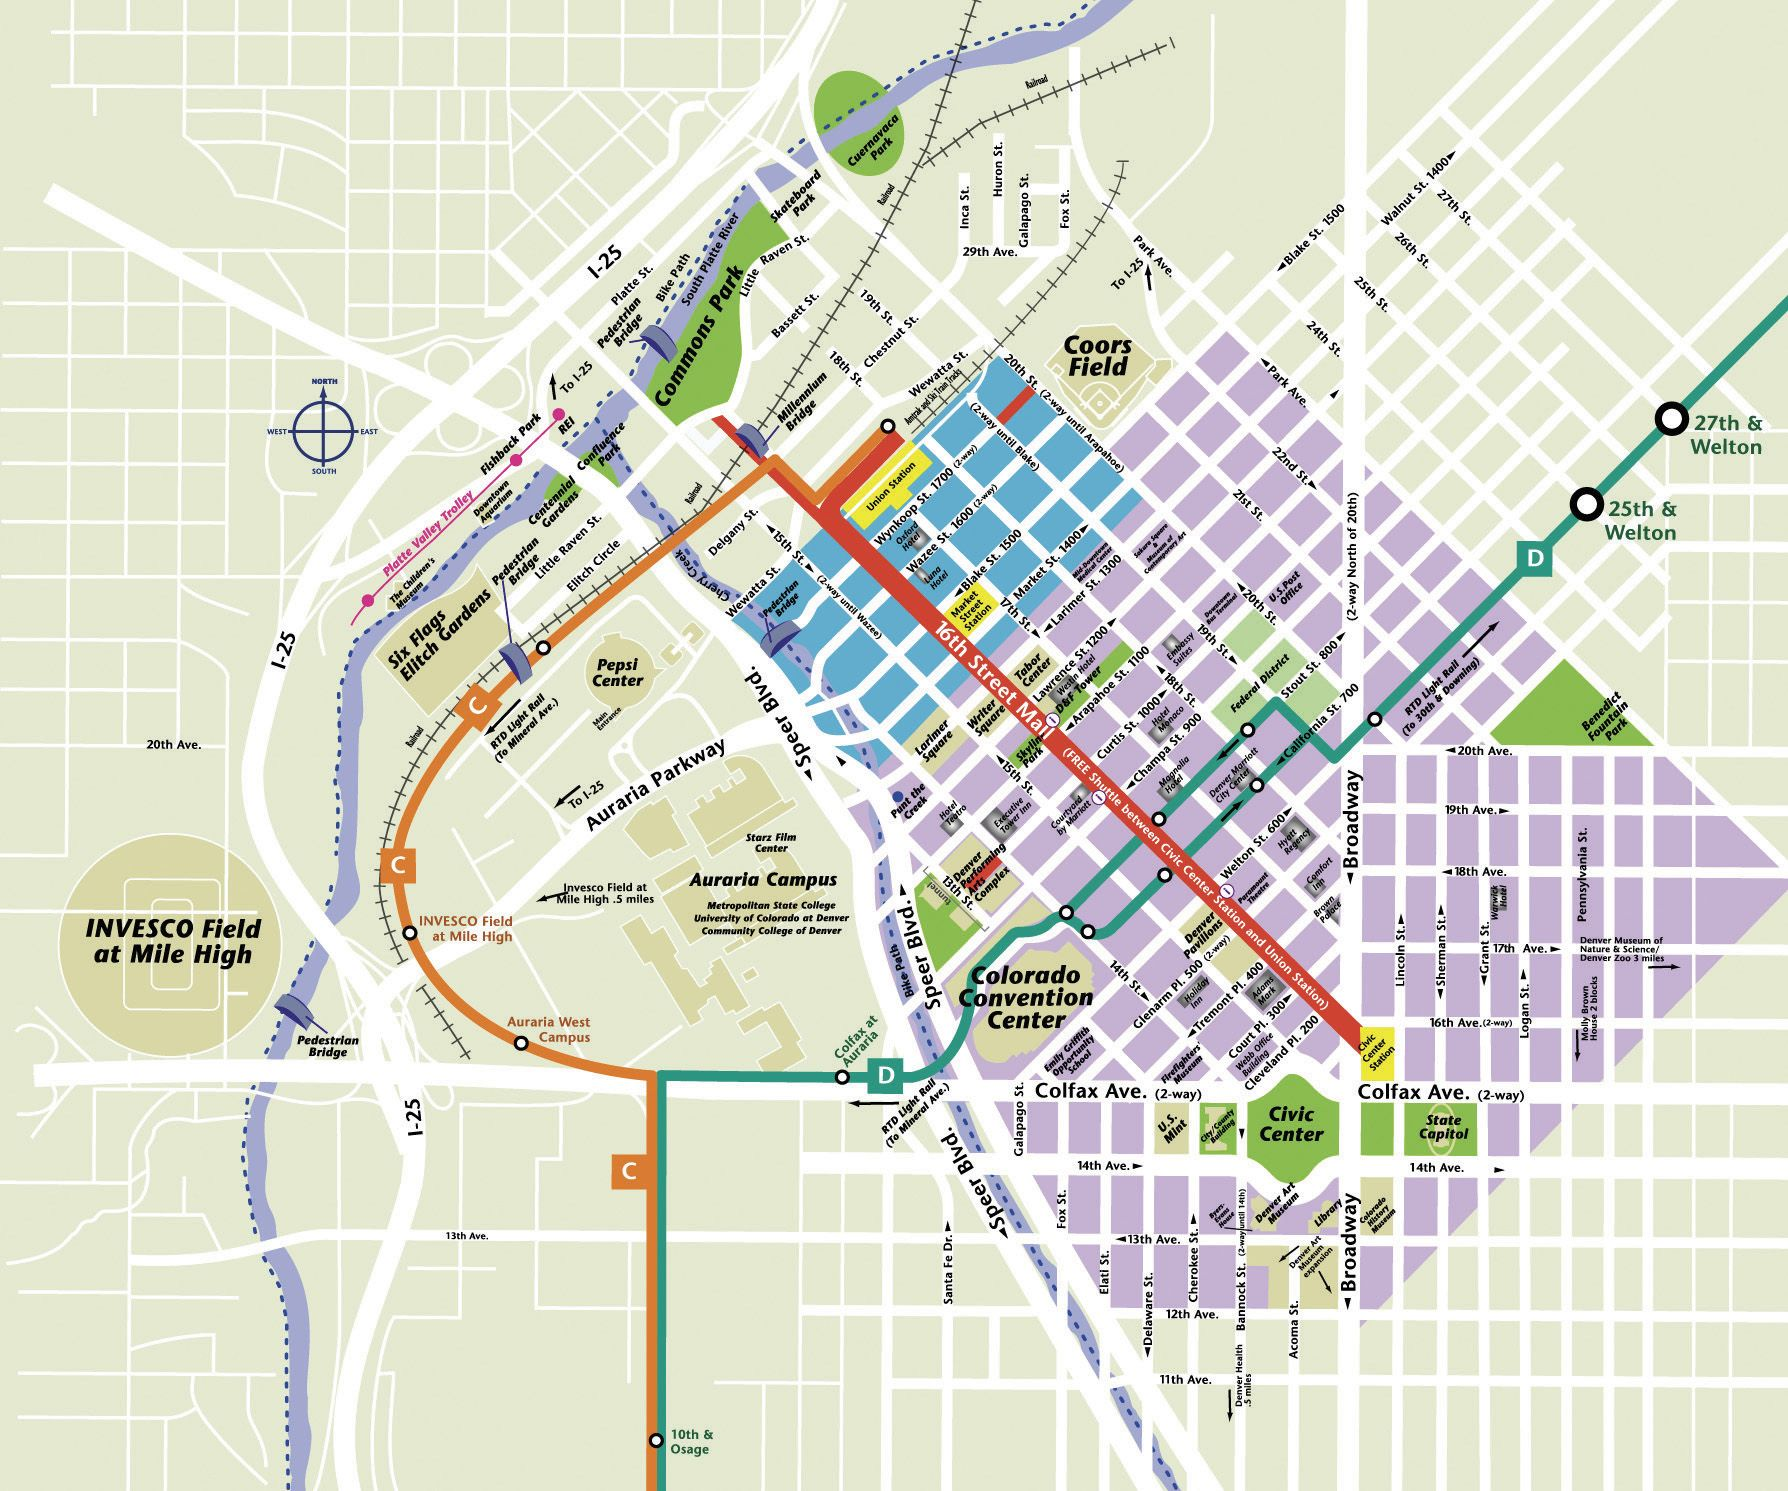 This large map of downtown Indianapolis may take a moment to load